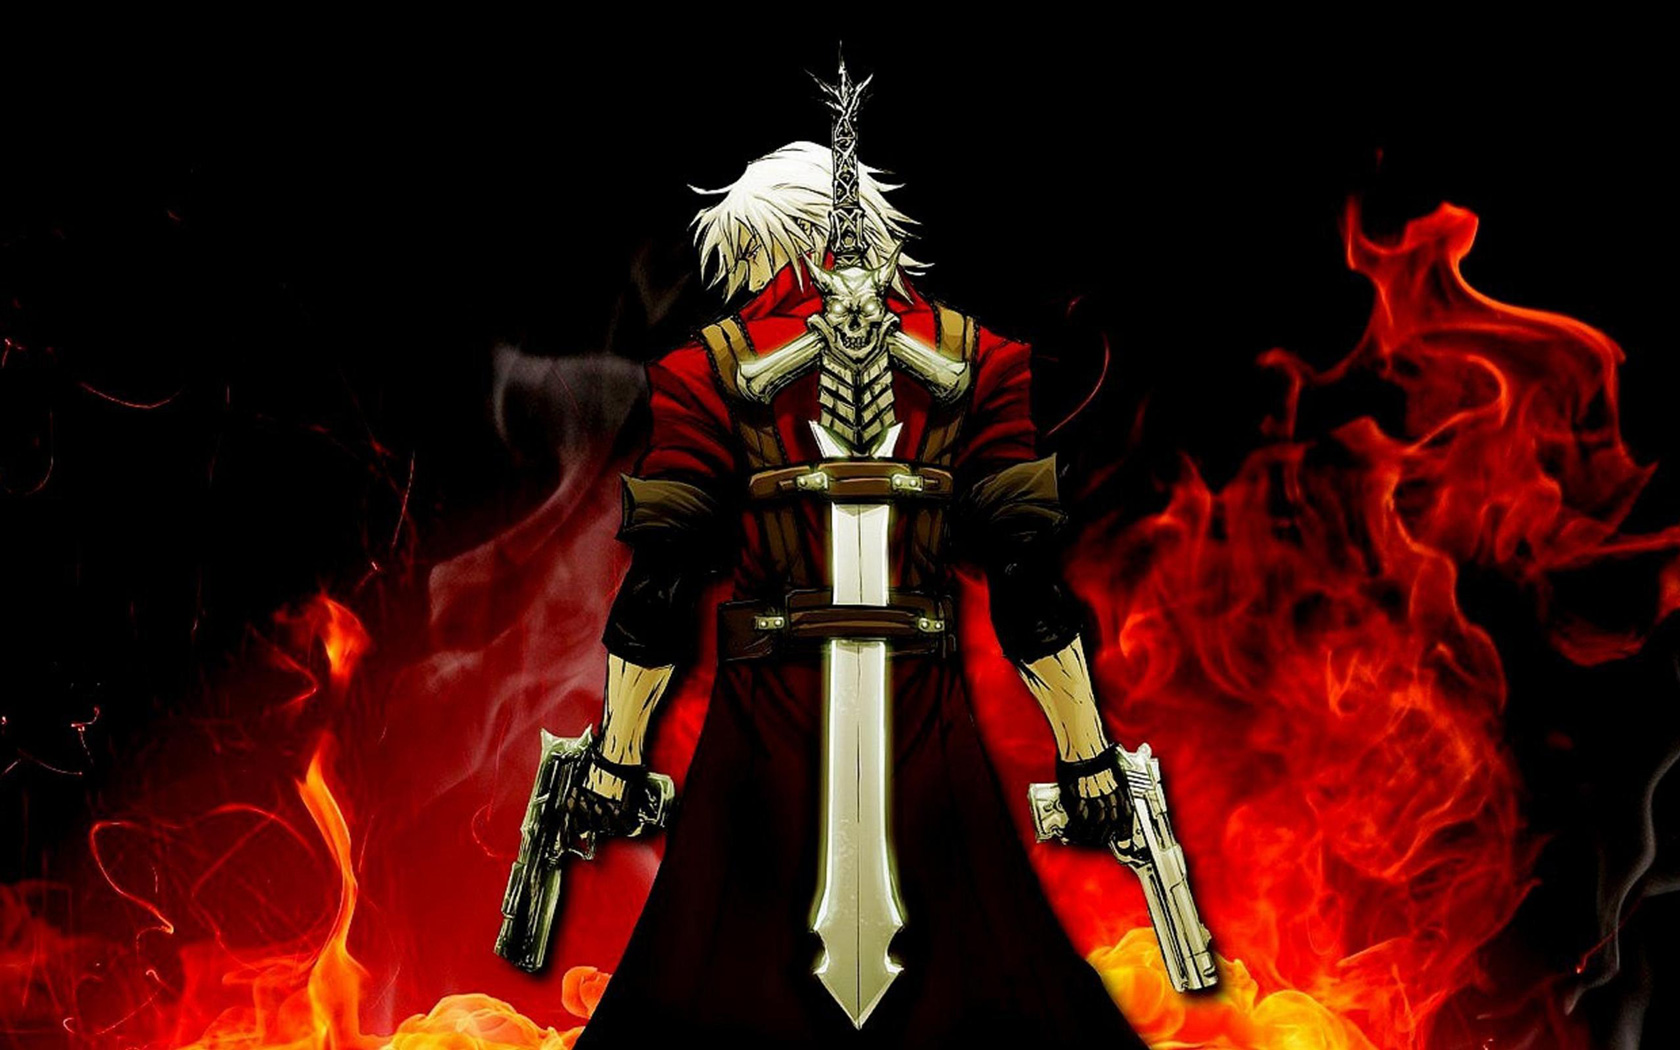 Devil May Cry 4 Wallpaper in 1680x1050